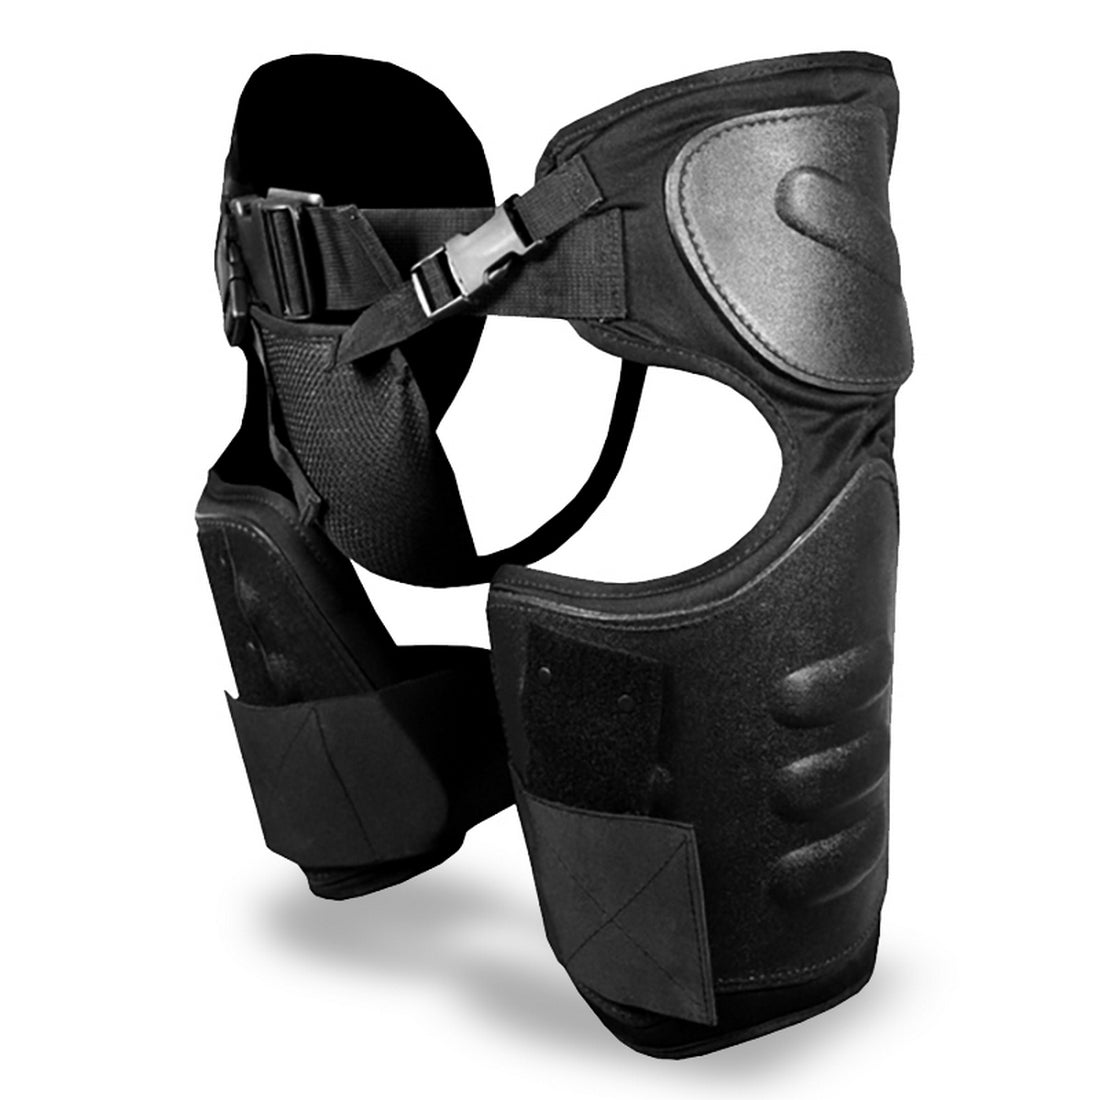 SecPro Riot Thigh & Groin Protector